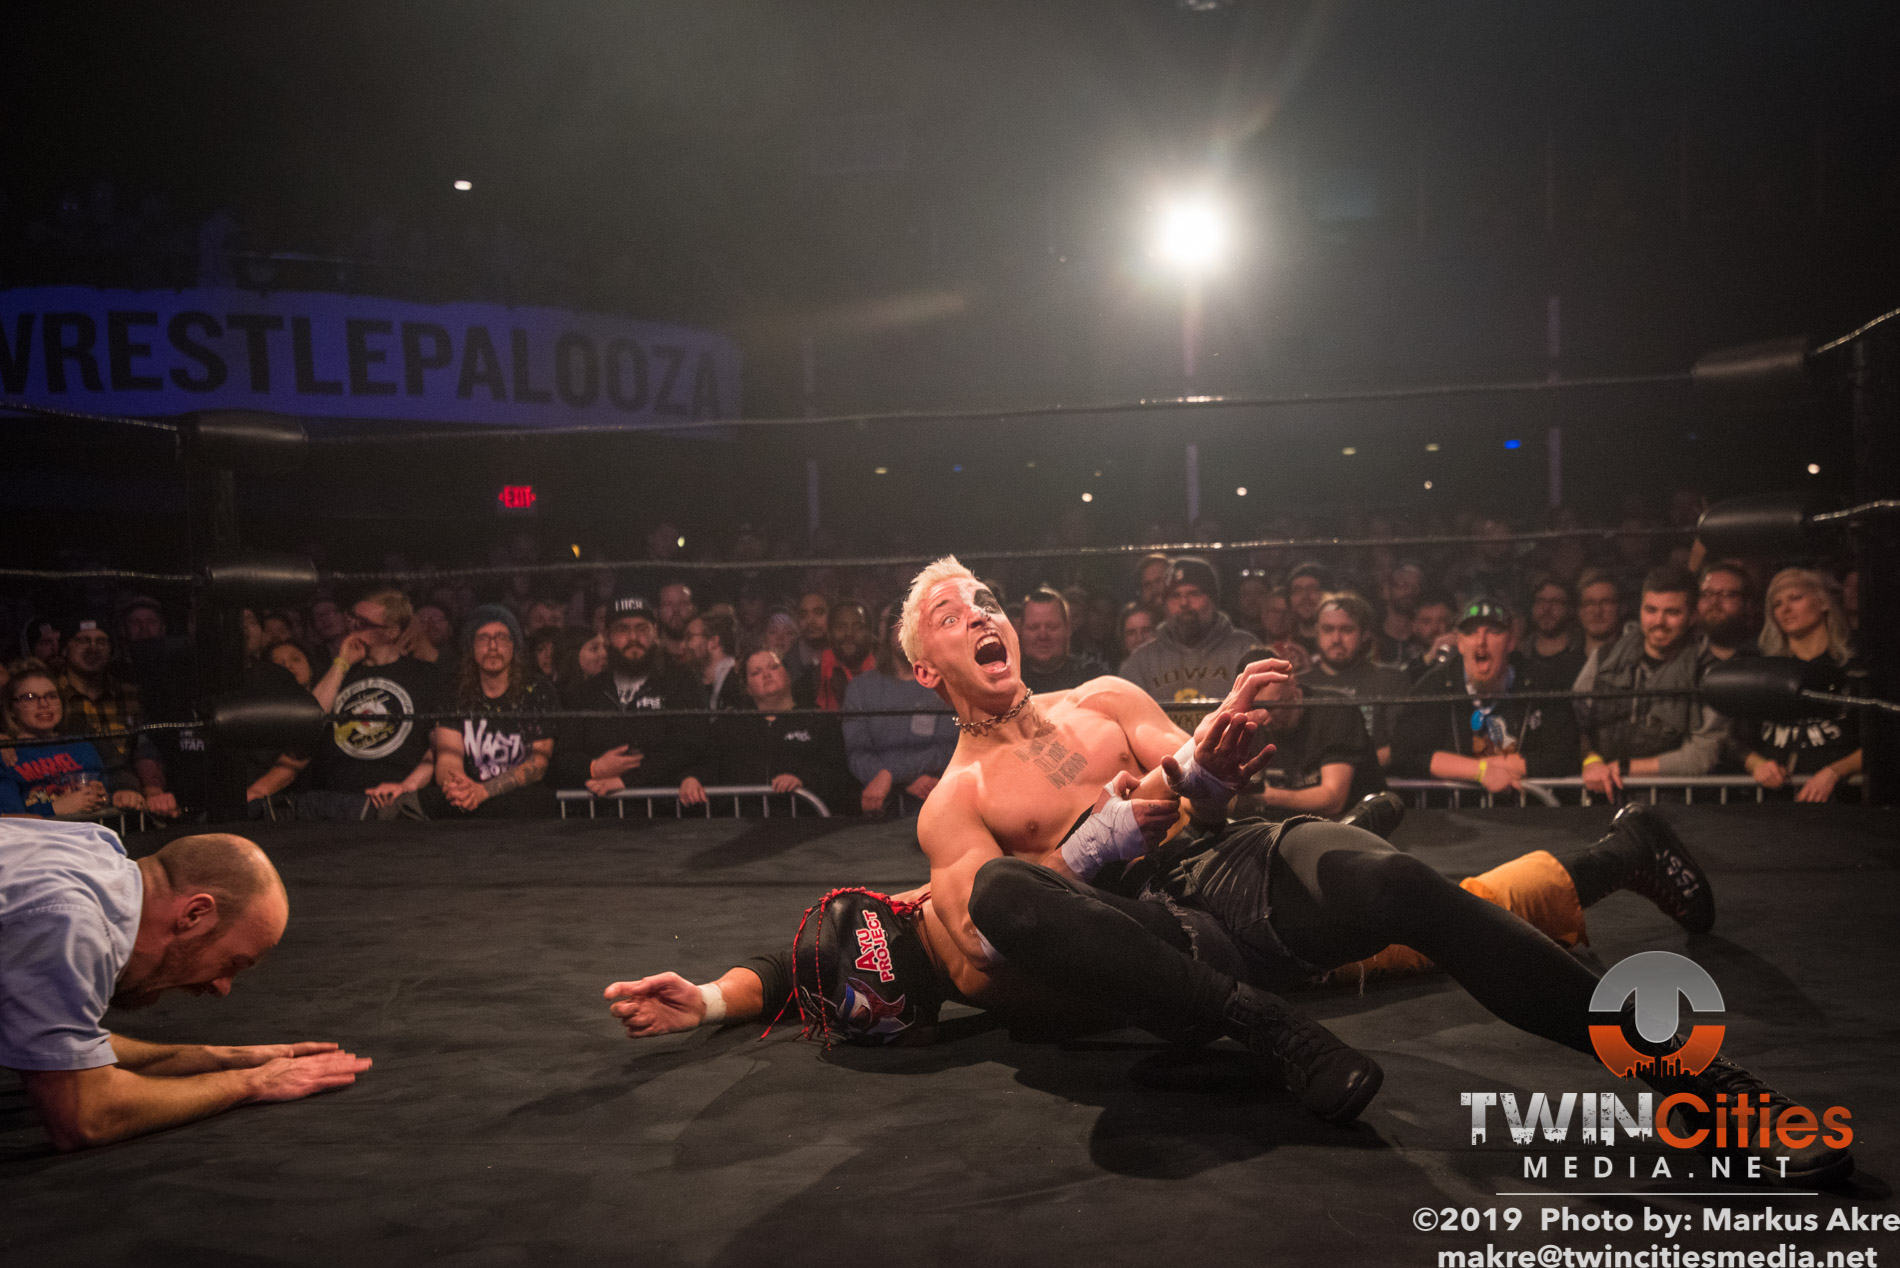 Wrestlepalooza - Match 5-12